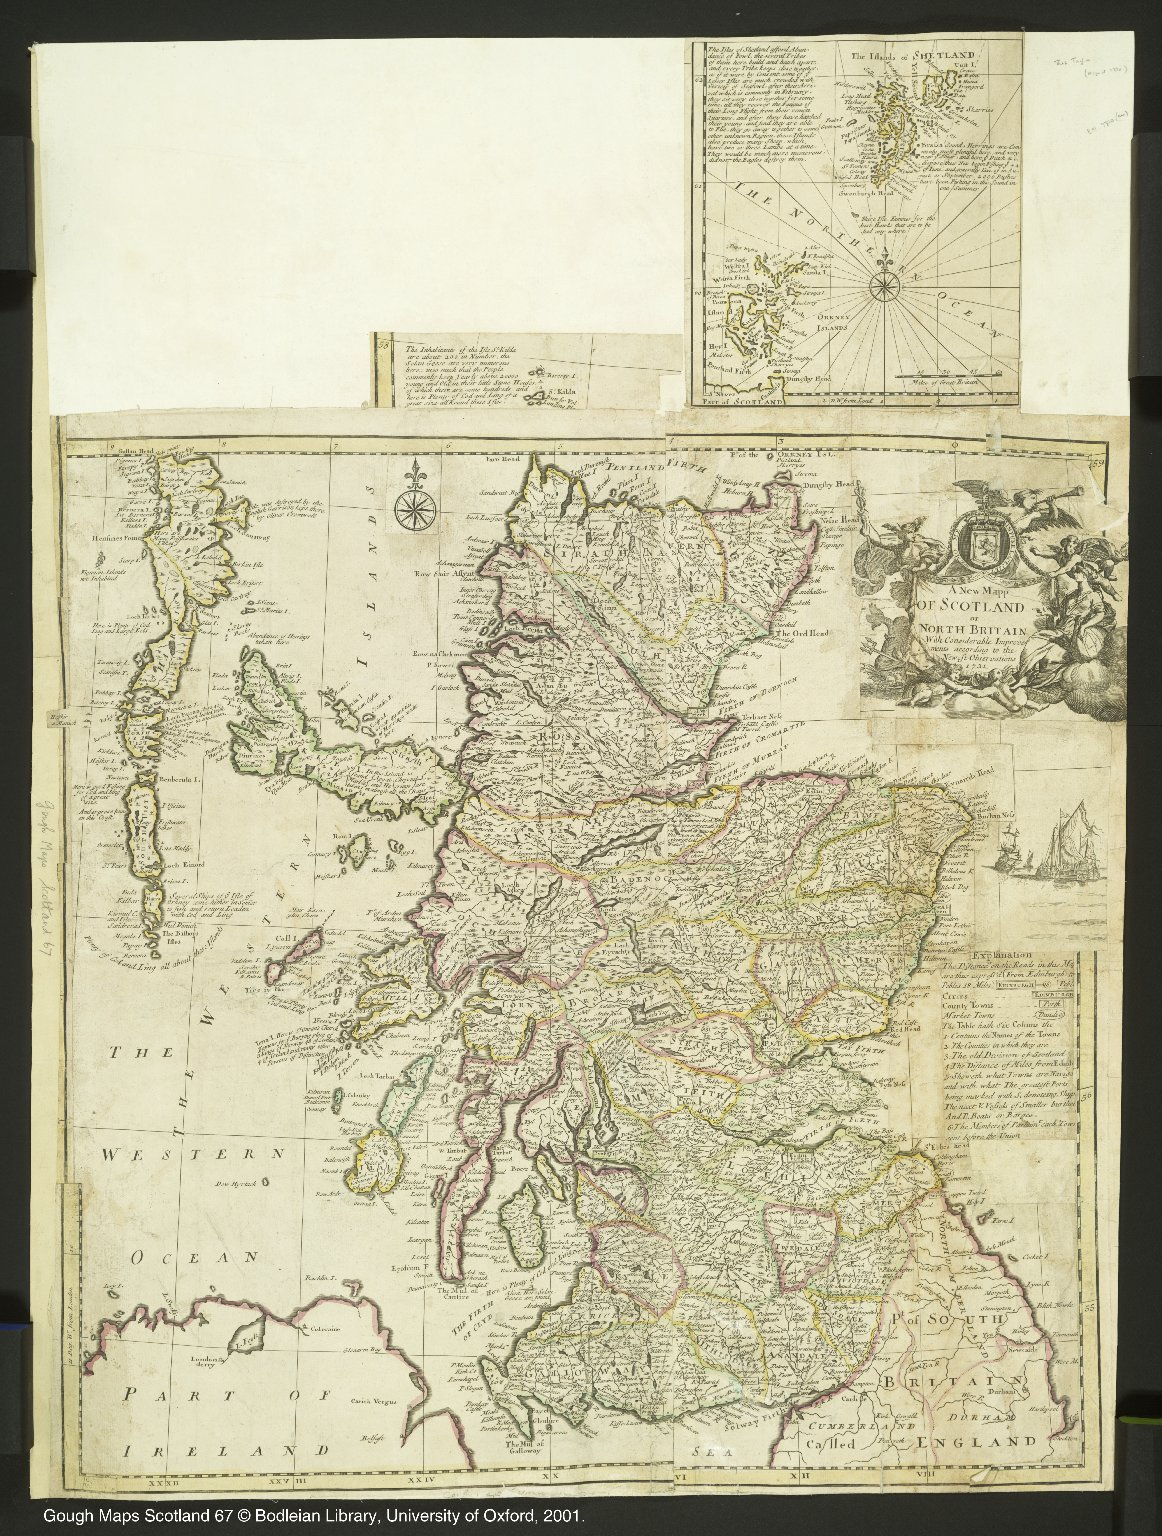 A Mew Mapp OF SCOTLAND or NORTH BRITAIN [1 of 1]